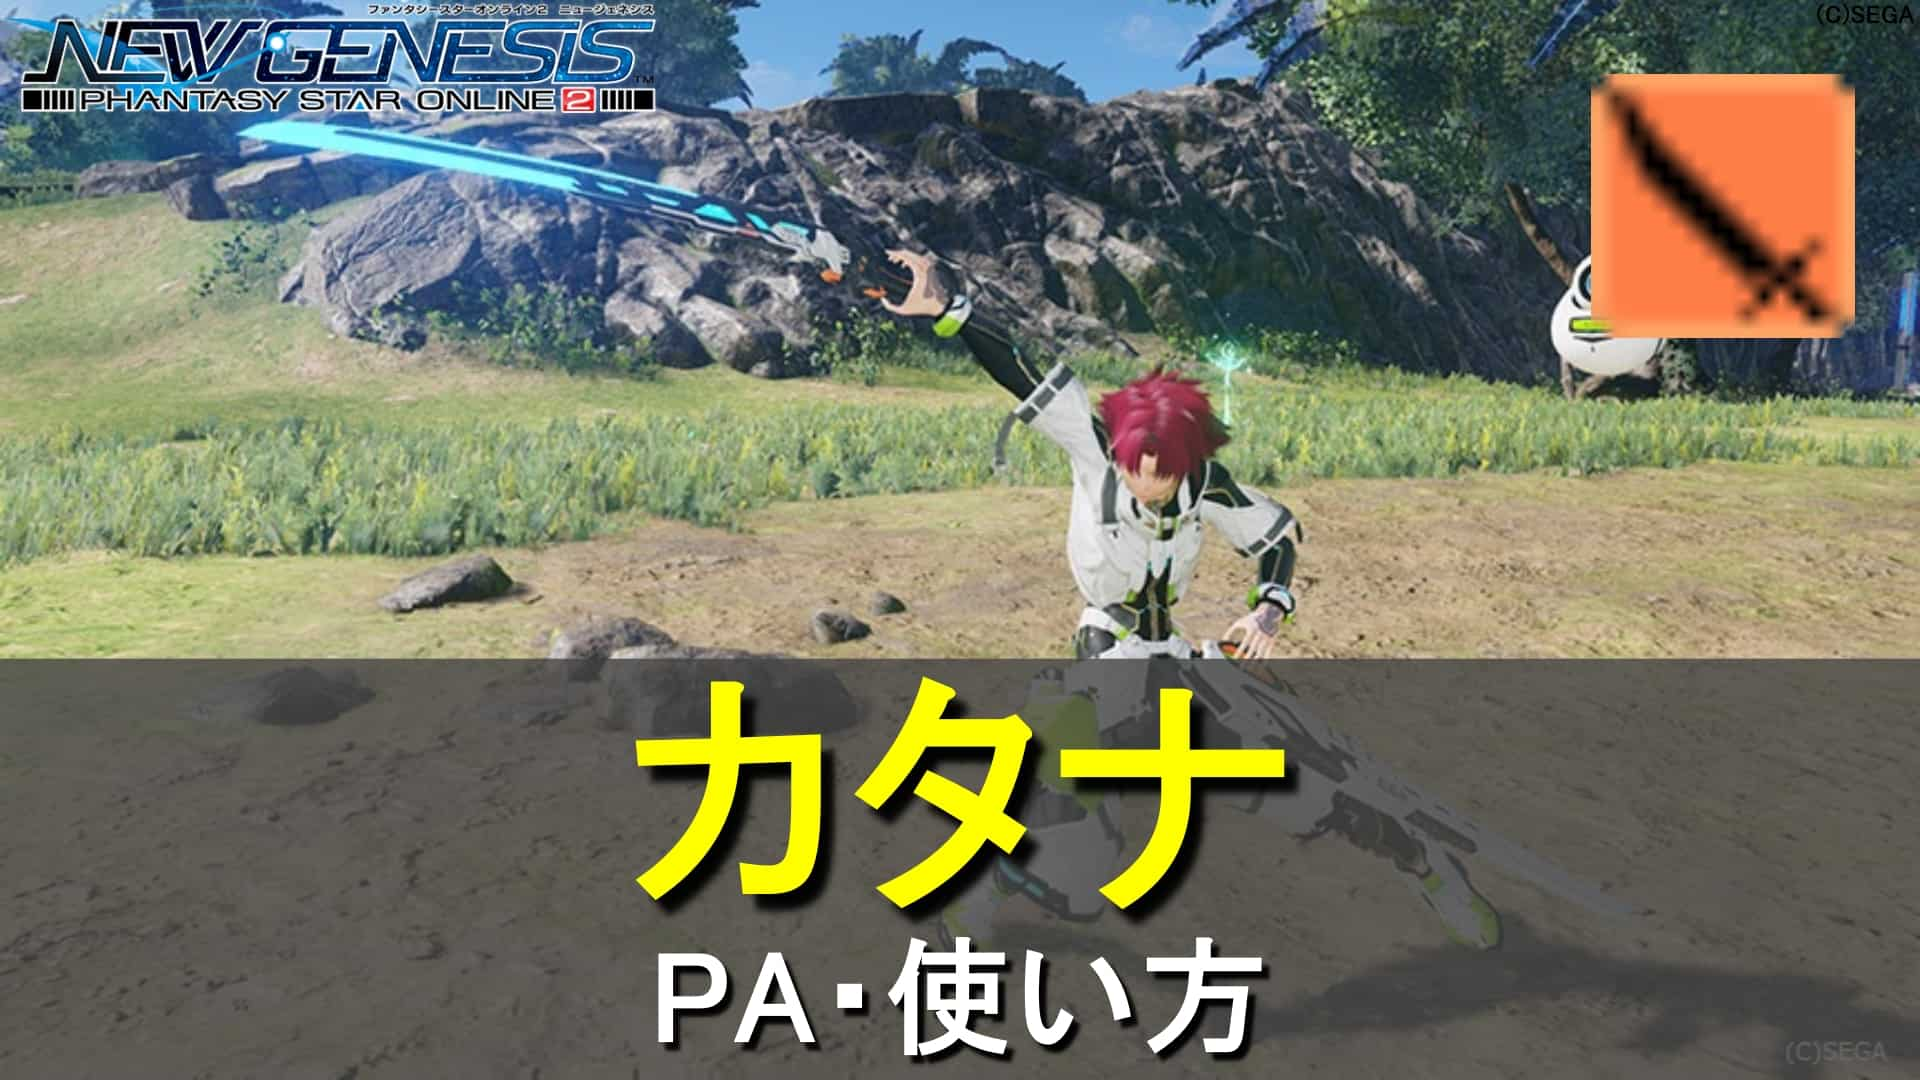 【PSO2NGS】カタナPAと使い方